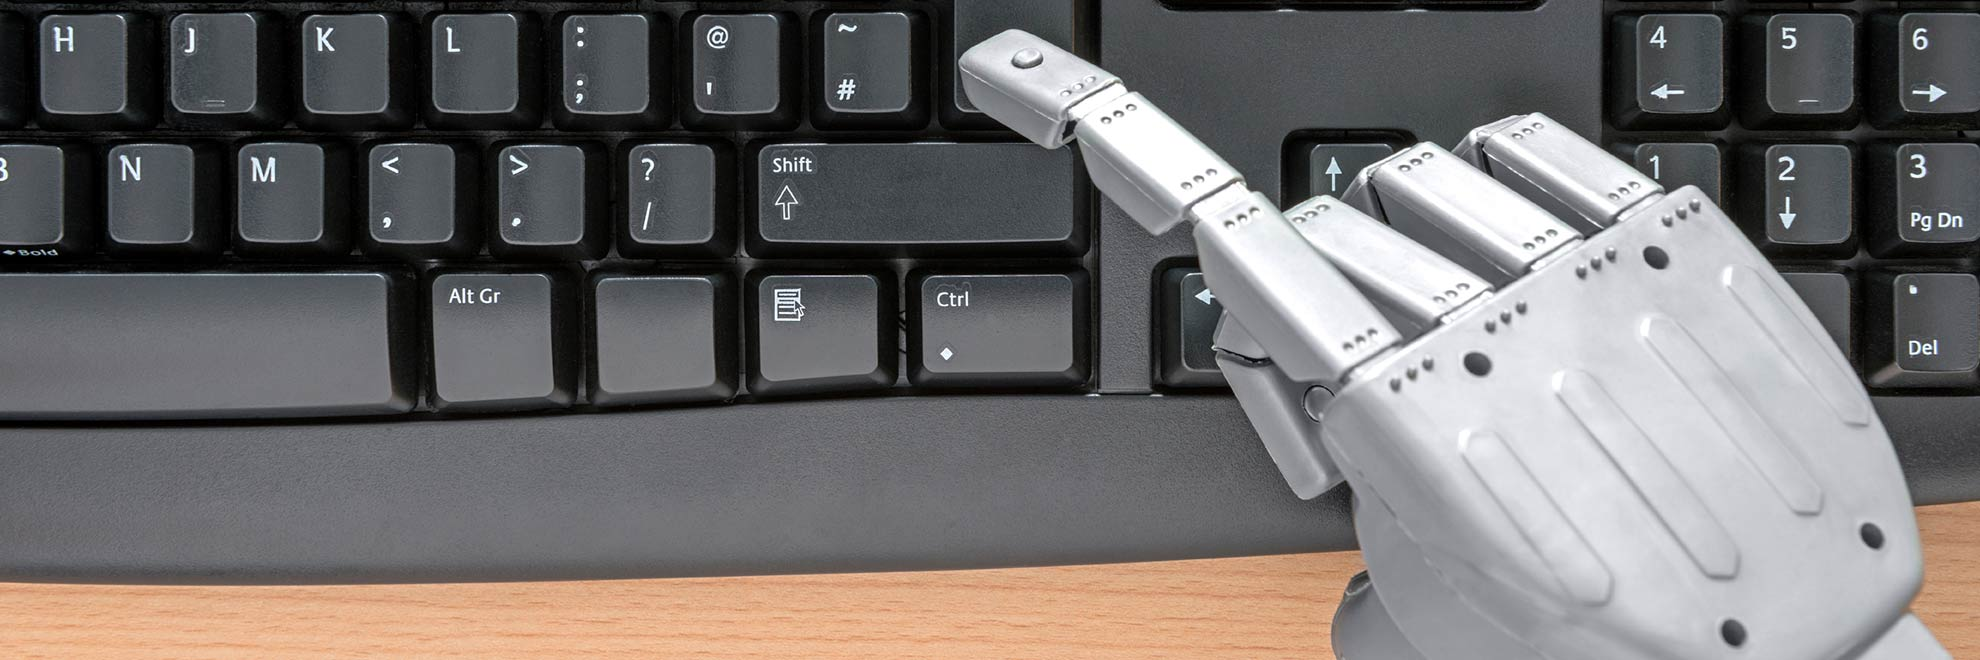 robot-hand-using-keyboard